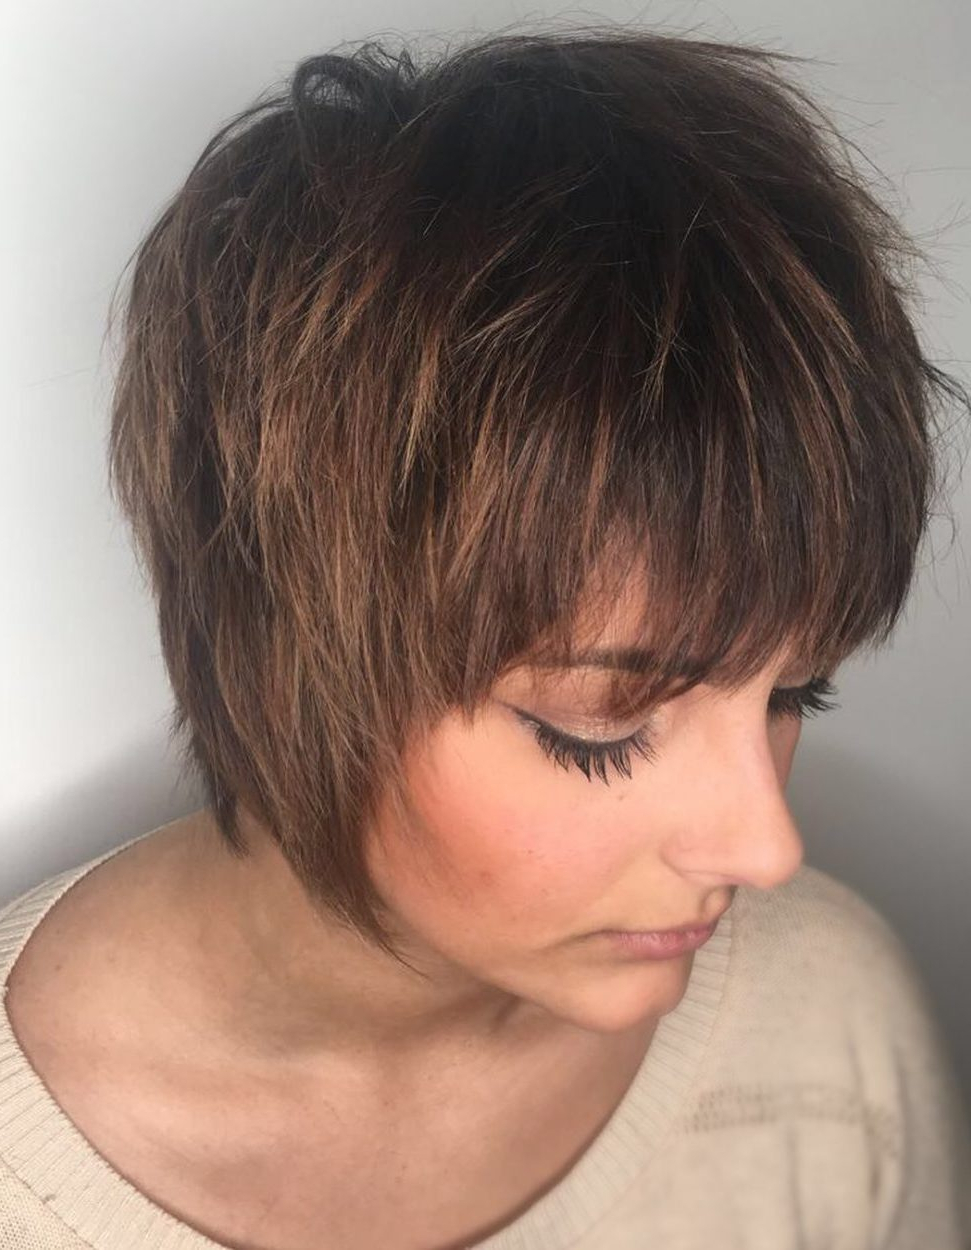 Top 25 Short Shag Haircuts Right Now – Short Bob Cuts Intended For Short Shag Blunt Haircuts (Gallery 1 of 20)